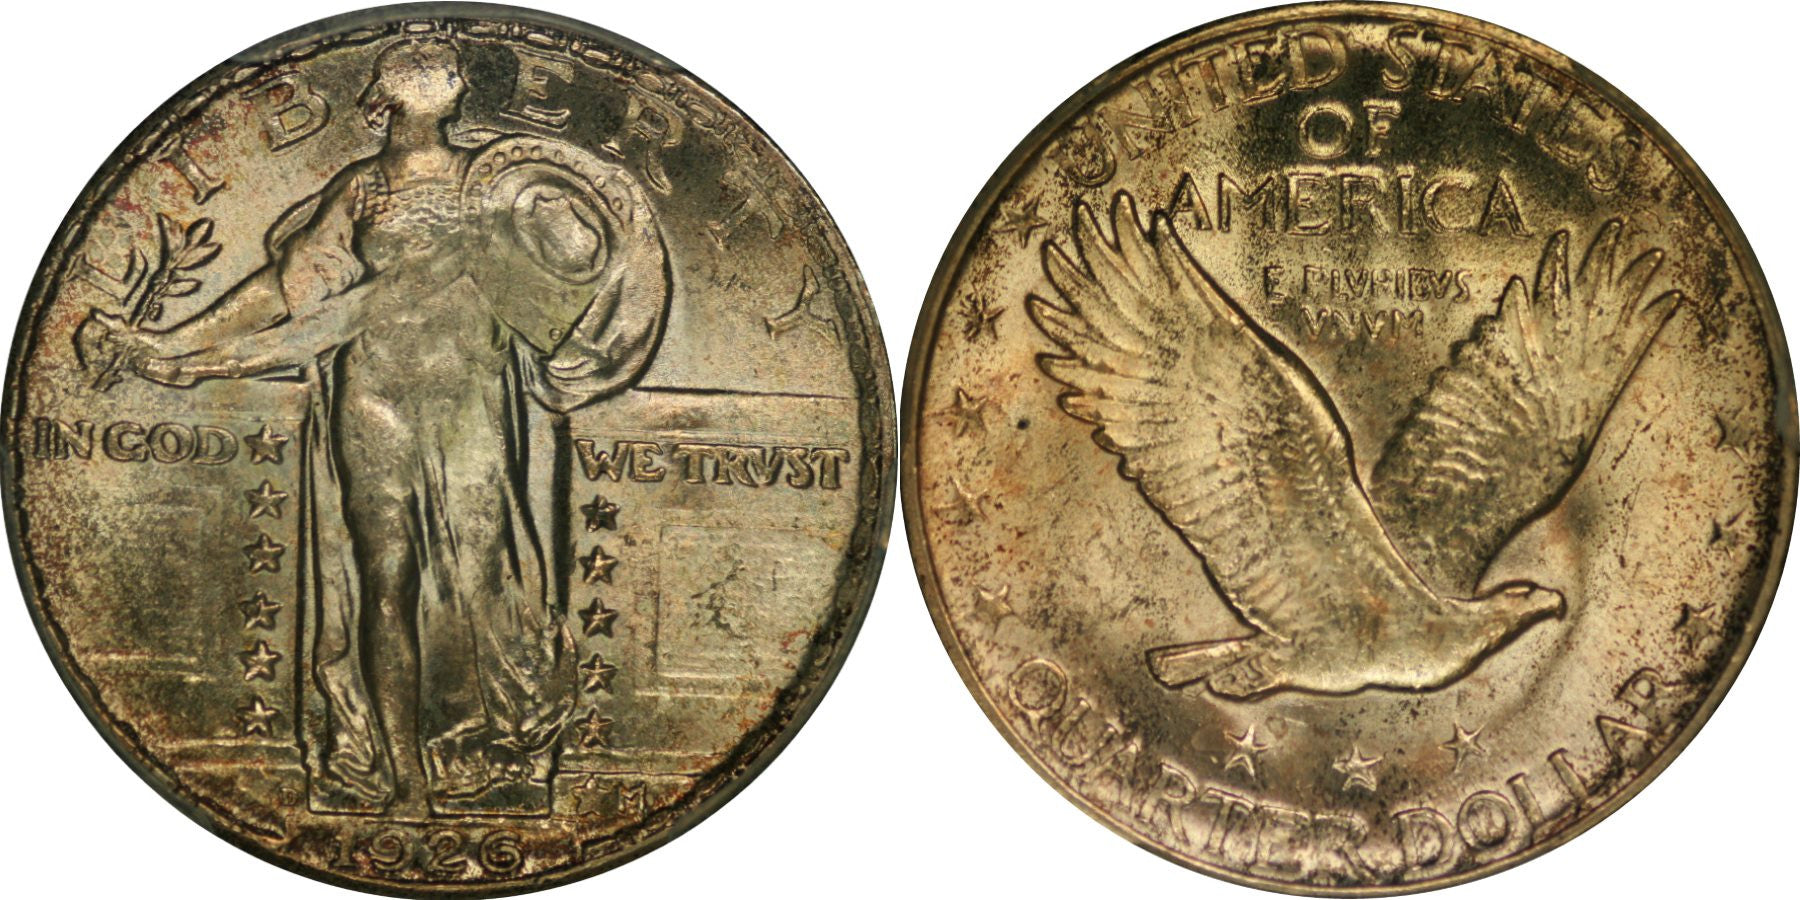 Standing Liberty Quarter MS-65 Condition